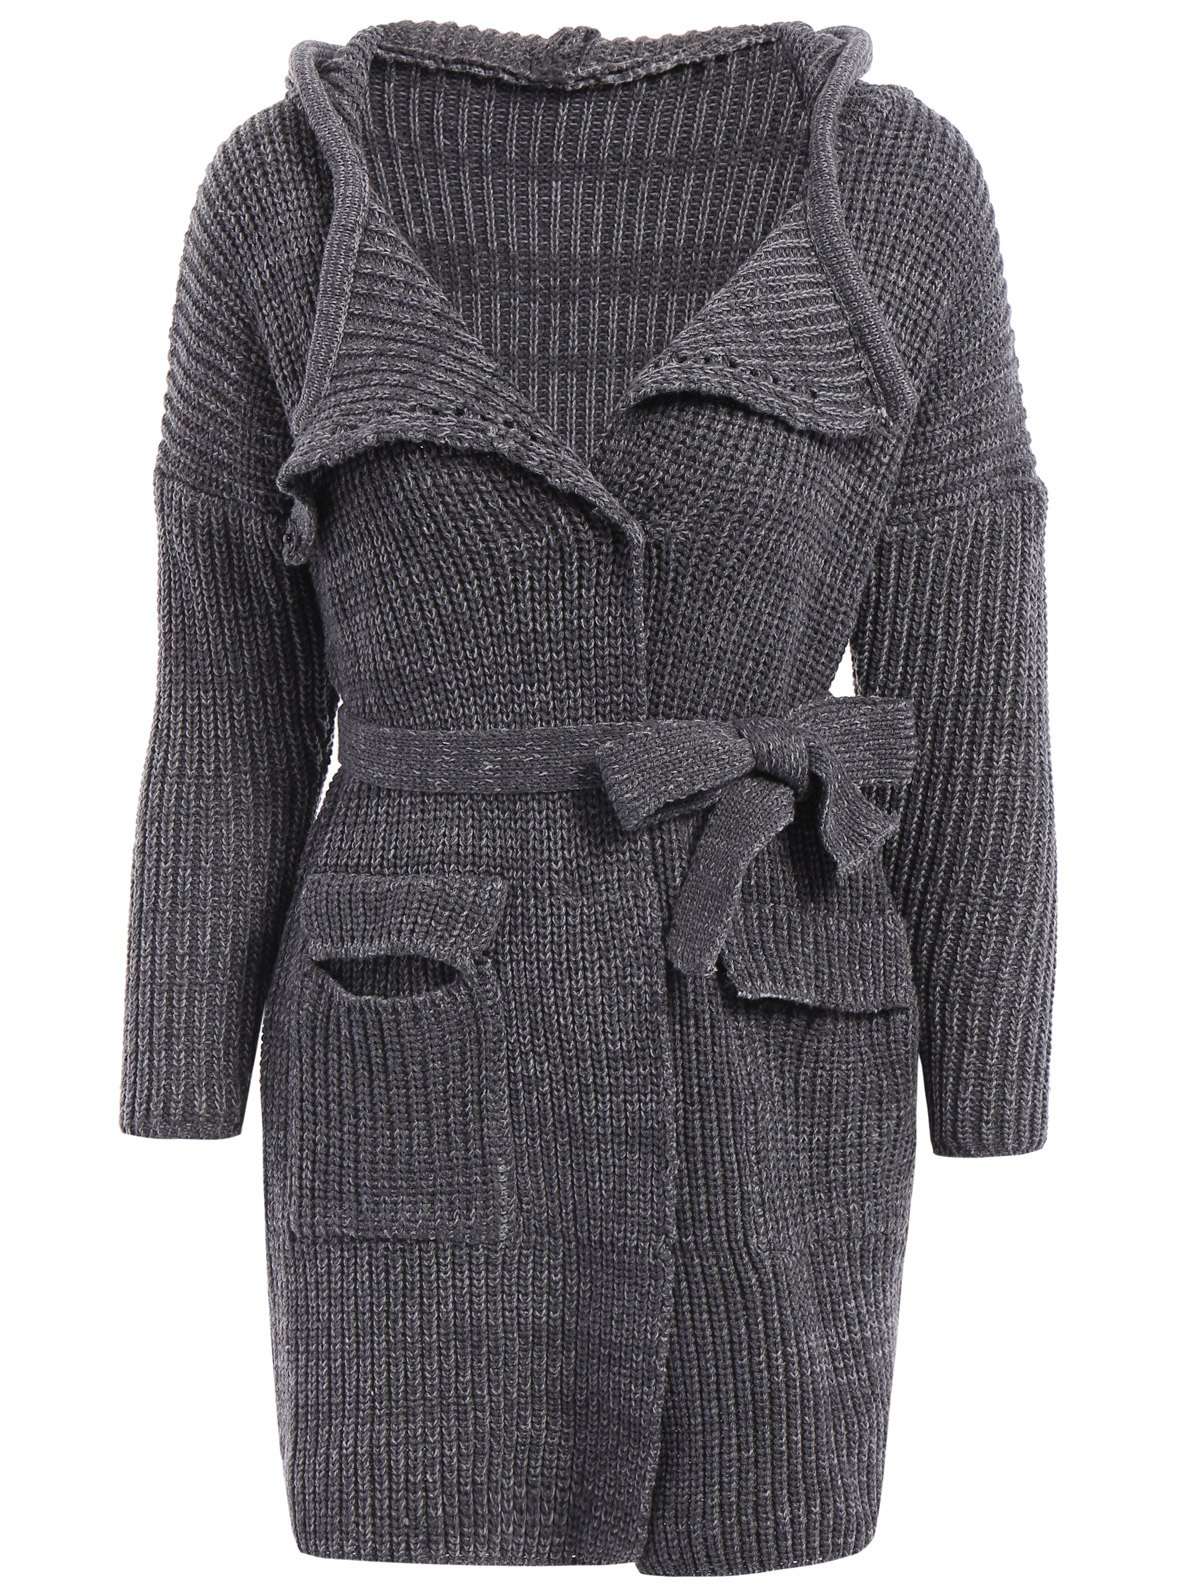 Stylish Hooded Long Sleeve Pocket Design Solid Color Women's Belted Cardigan - GRAY ONE SIZE(FIT SIZE XS TO M)